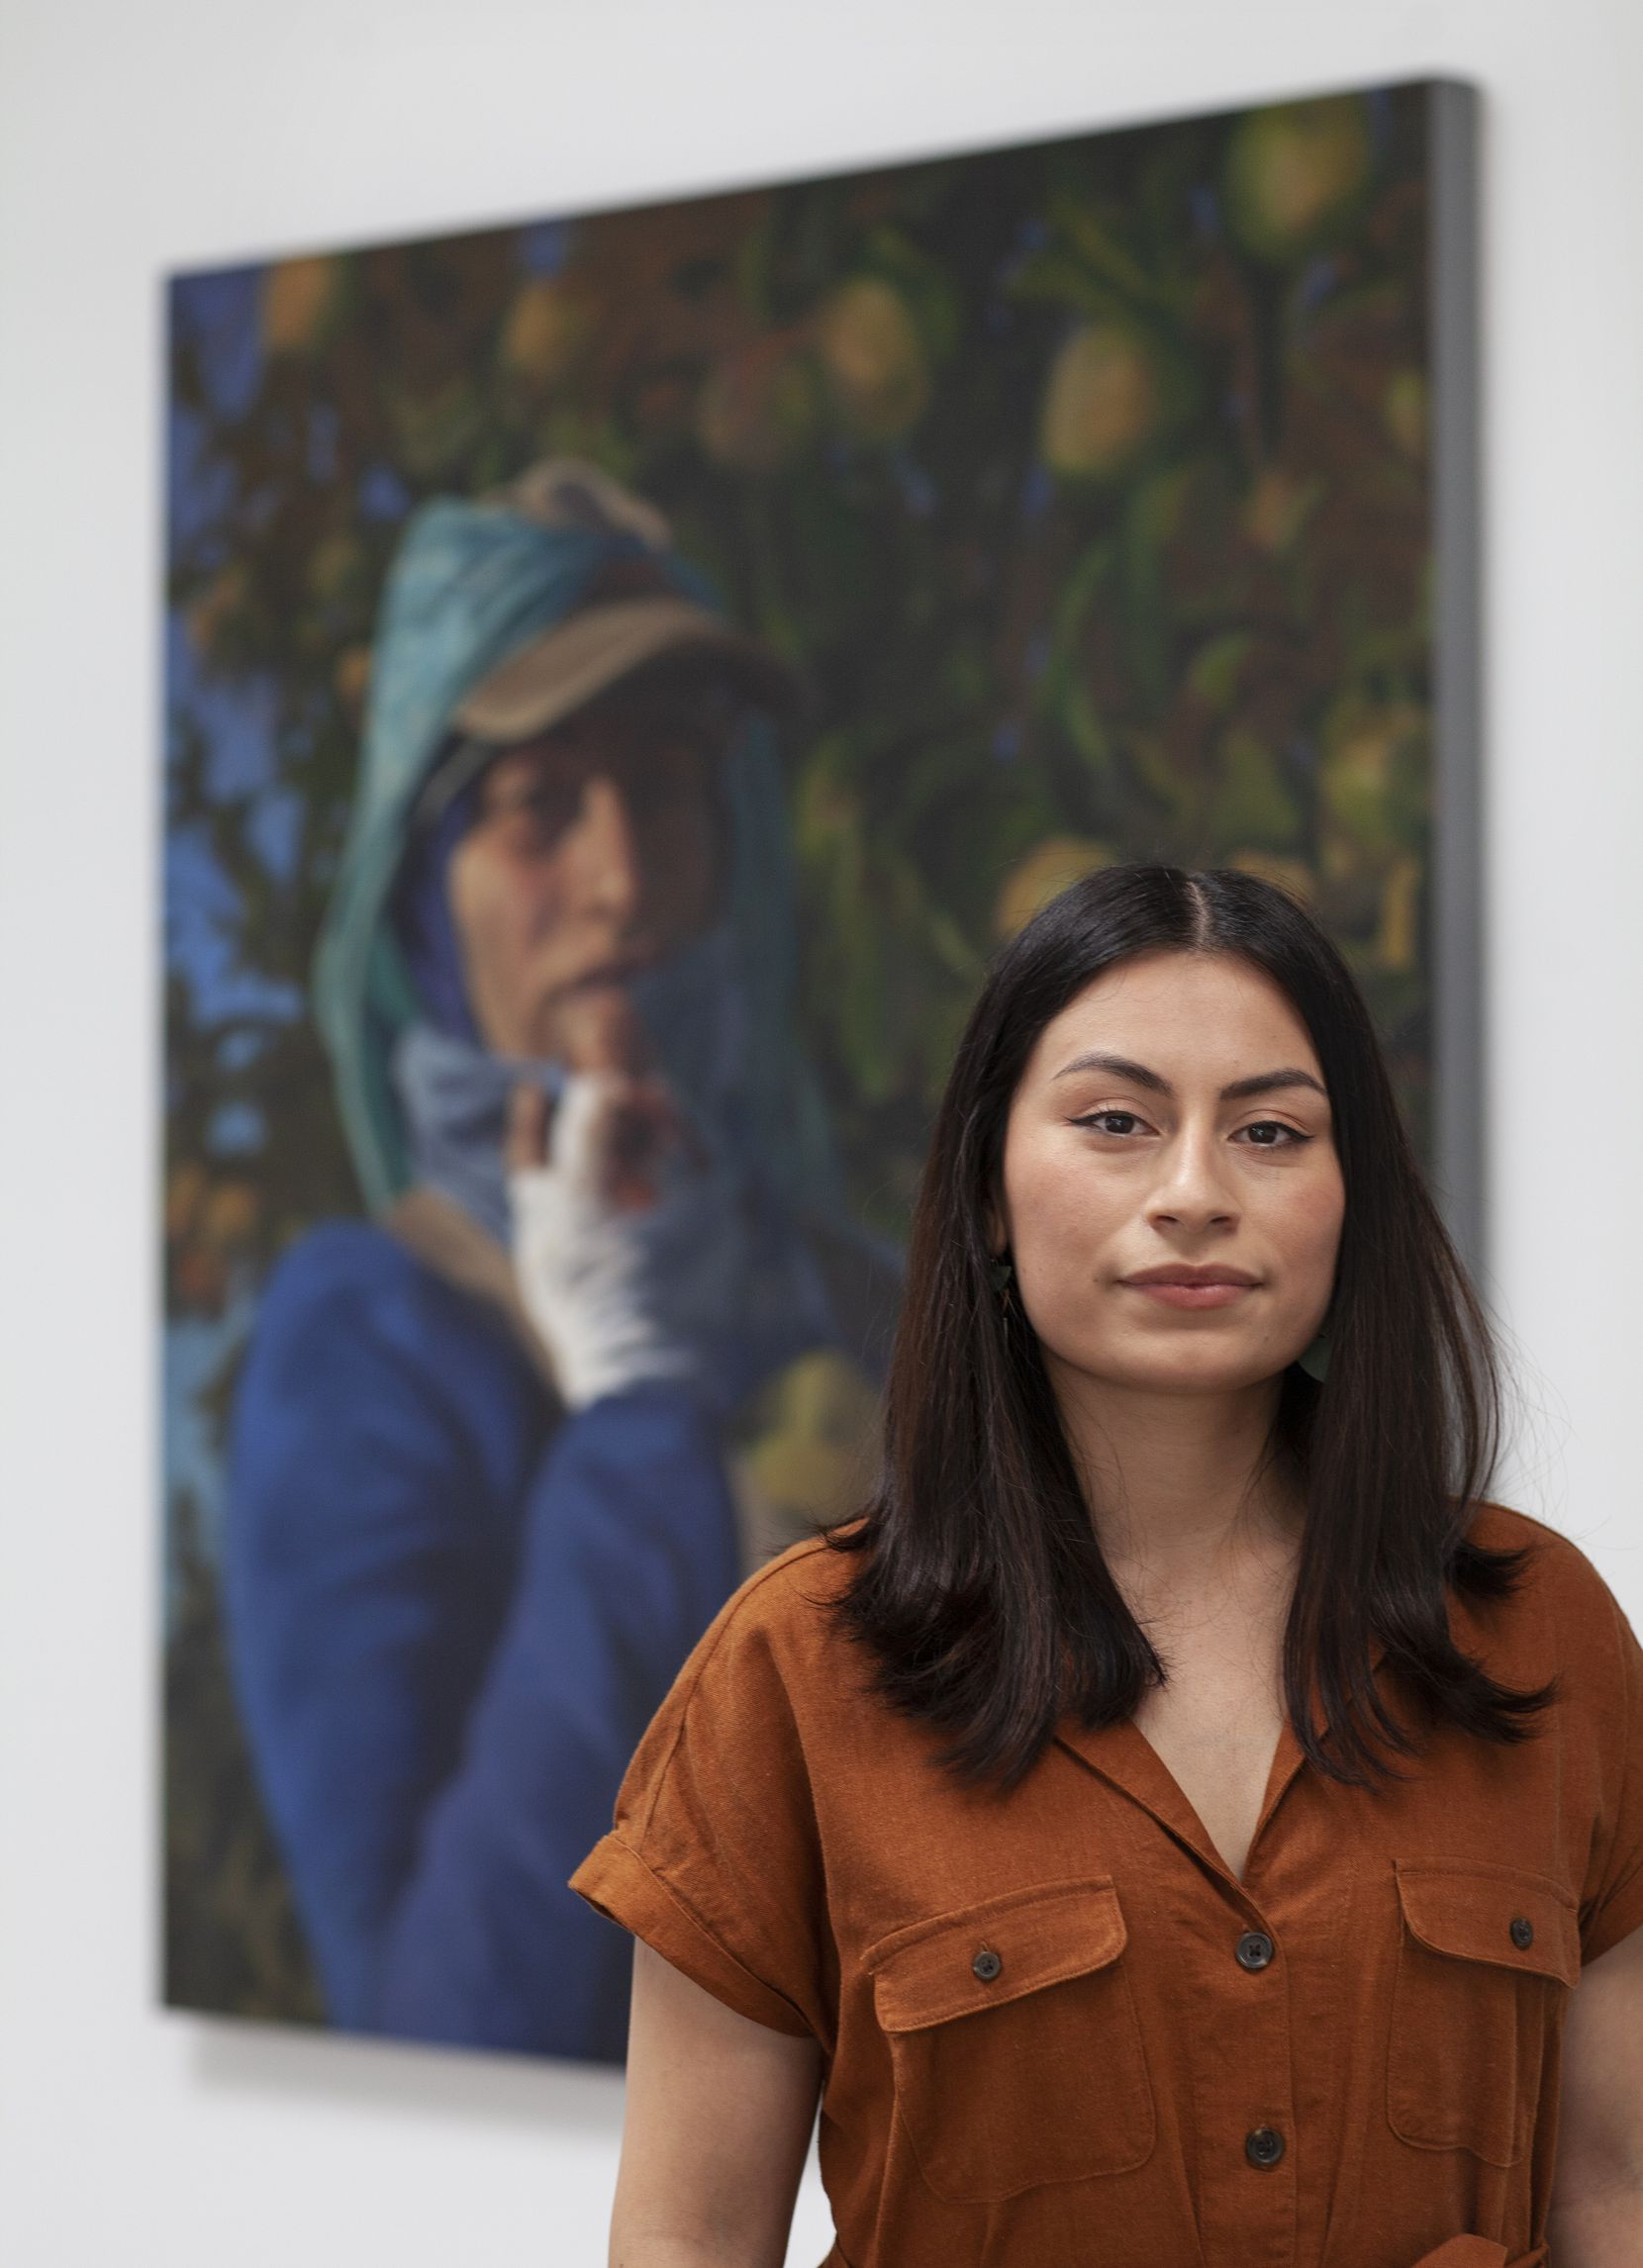 Artist Arely Morales with her painting 'Maria,' 2017, oil on canvas. Photograph by Nan Coulter/Special Contributor.